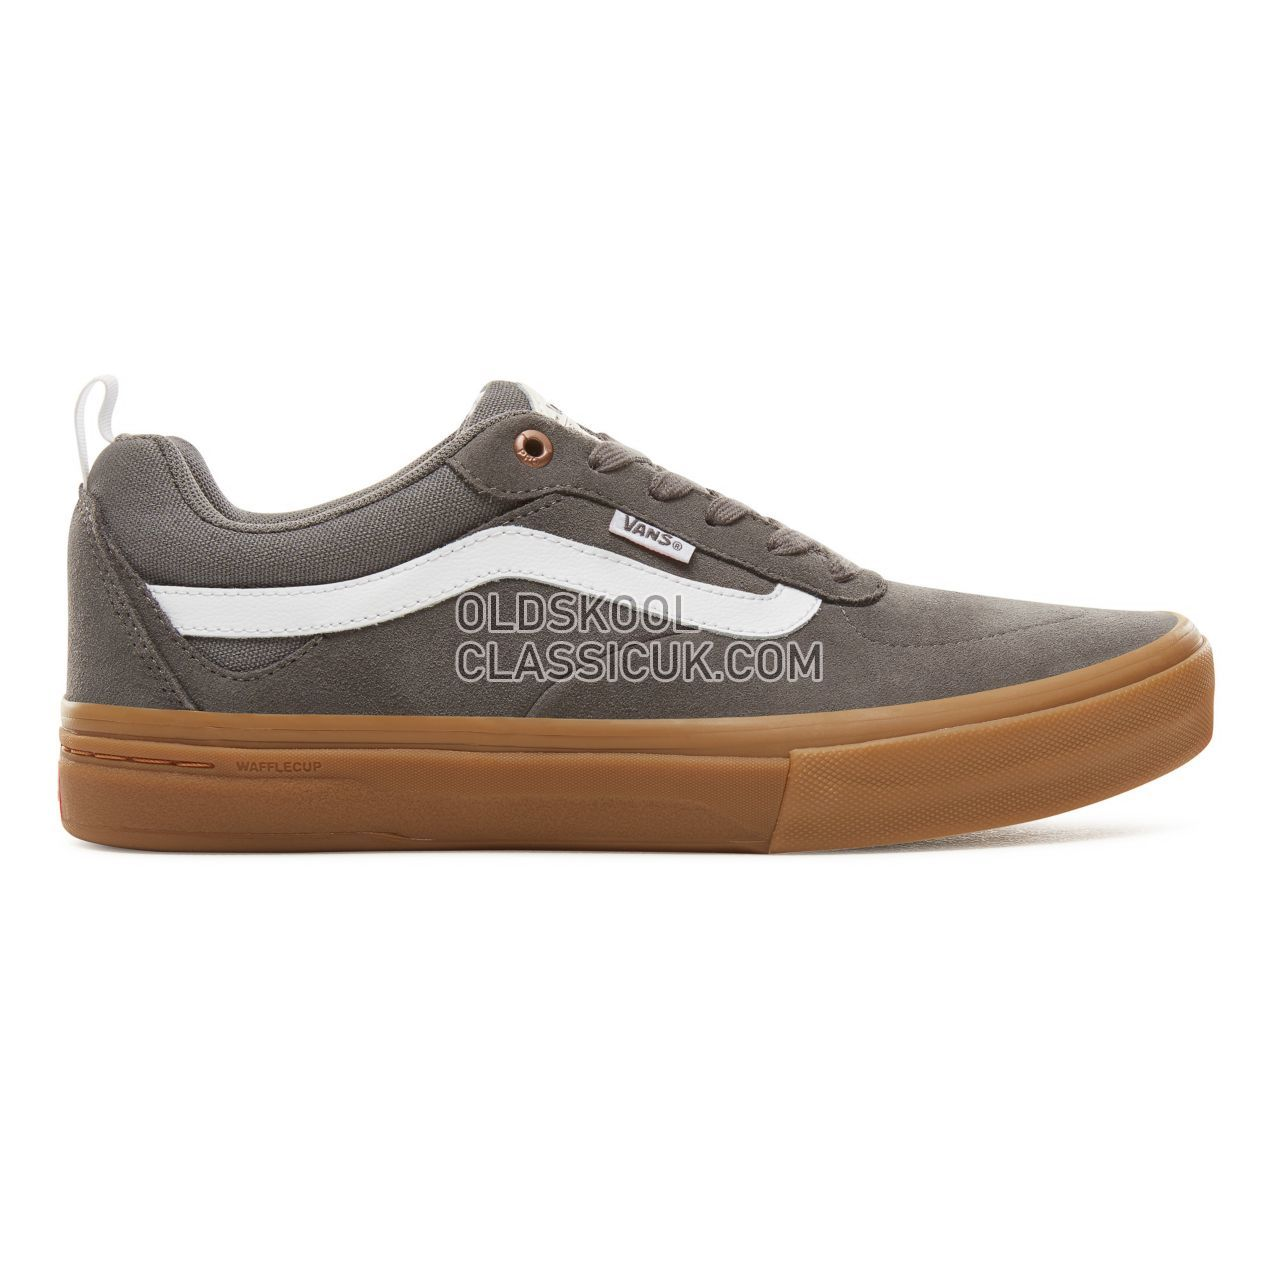 b01da0b975 Vans Kyle Walker Pro Sneakers Mens Pewter Light Gum VA2XSGKT9 Shoes ...